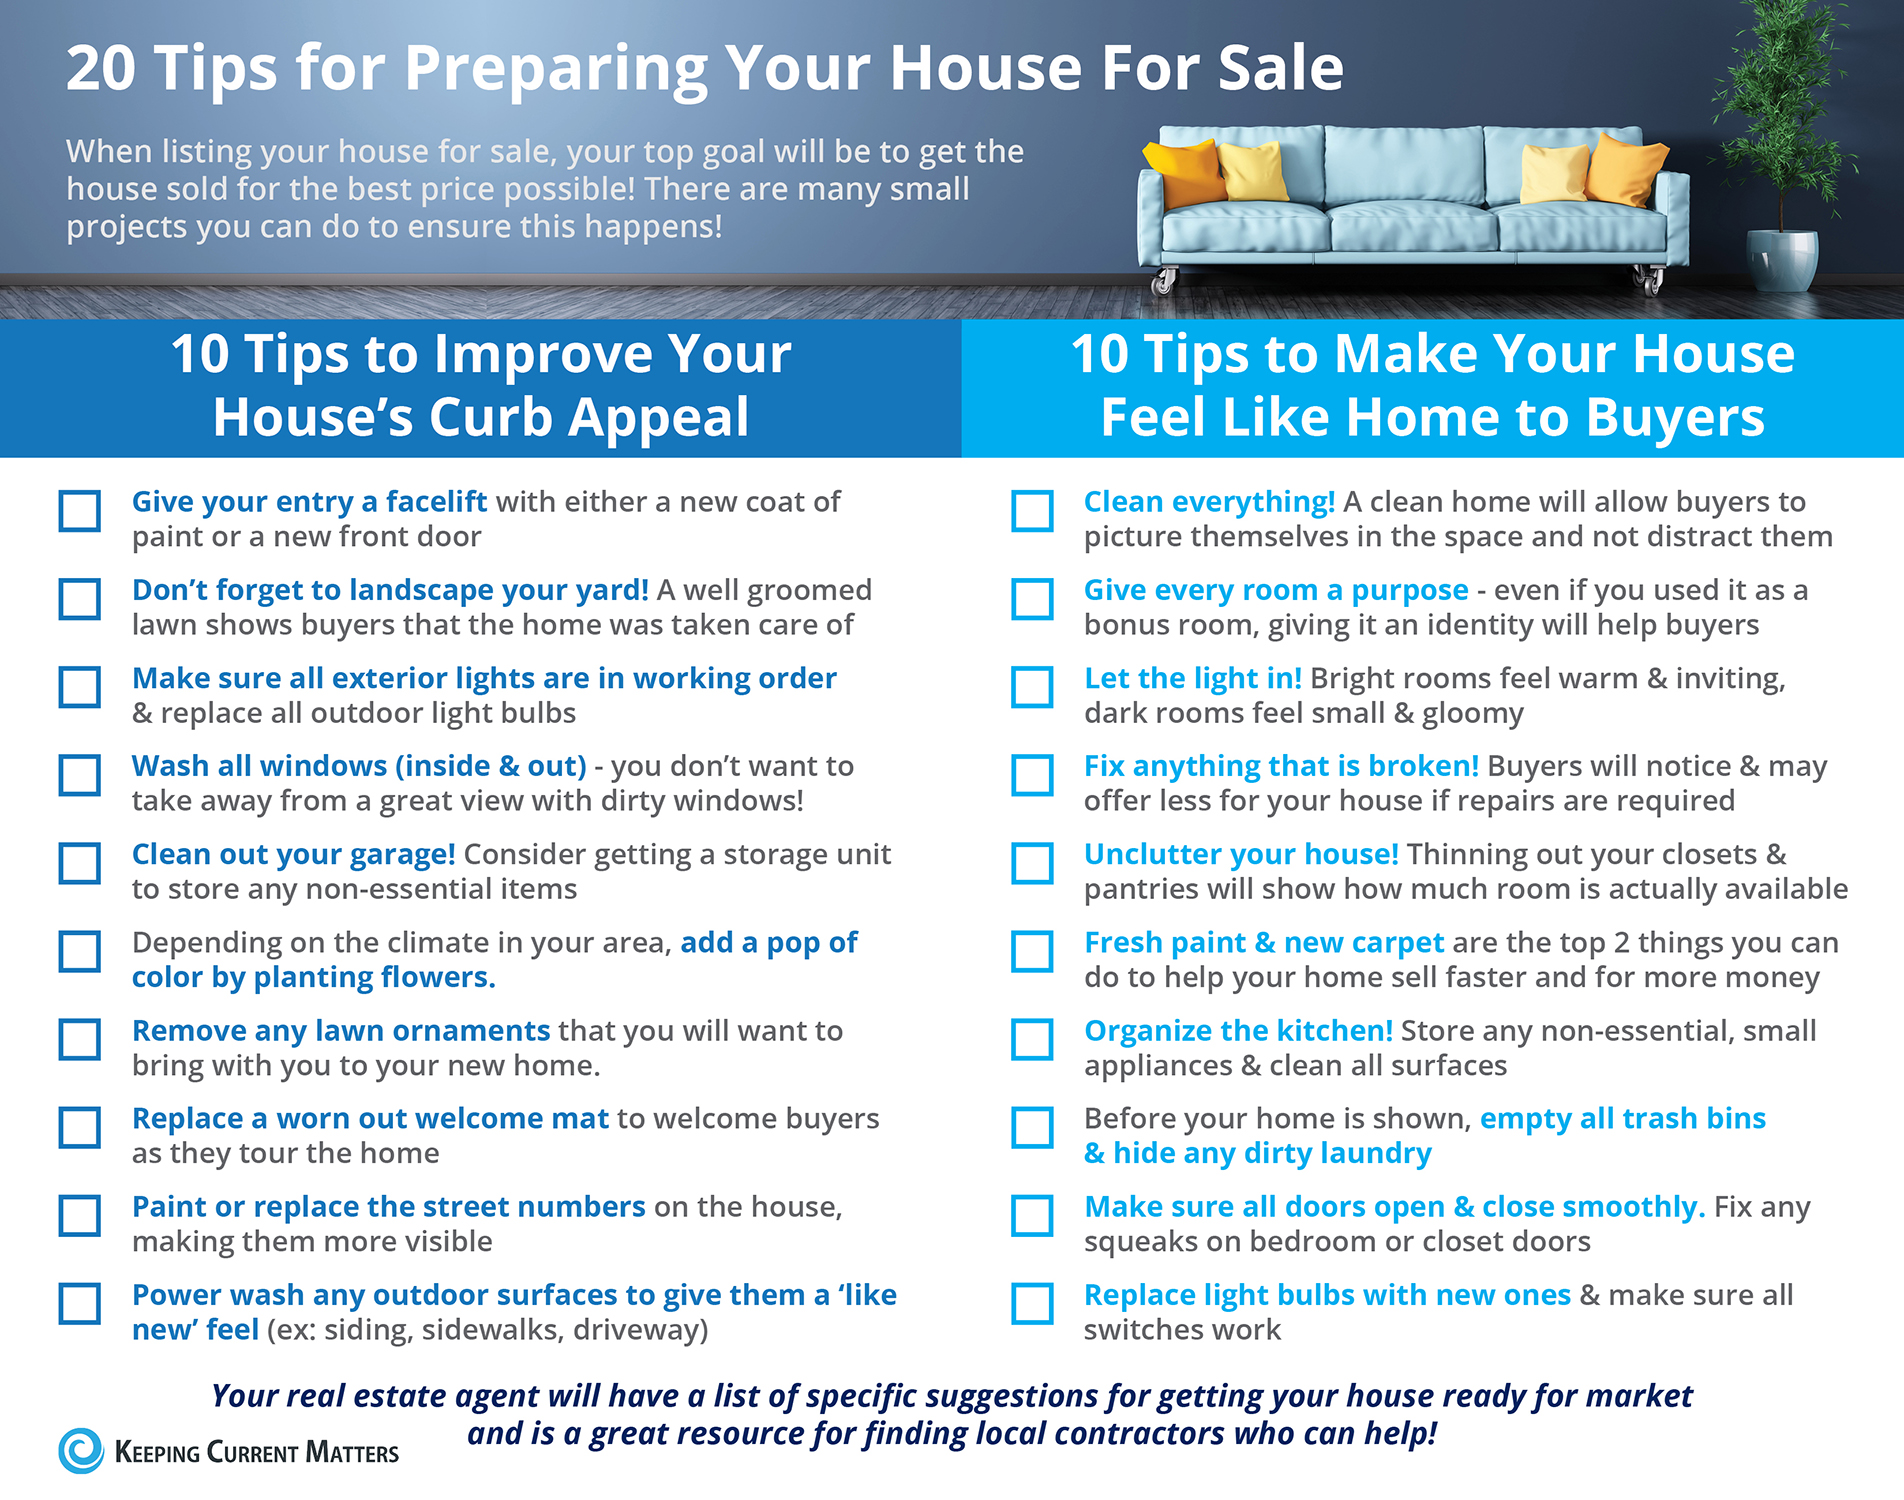 20 Tips for Preparing Your House for Sale. Improving Home's curb appeal and Tips to Make your house feel like home to buyers